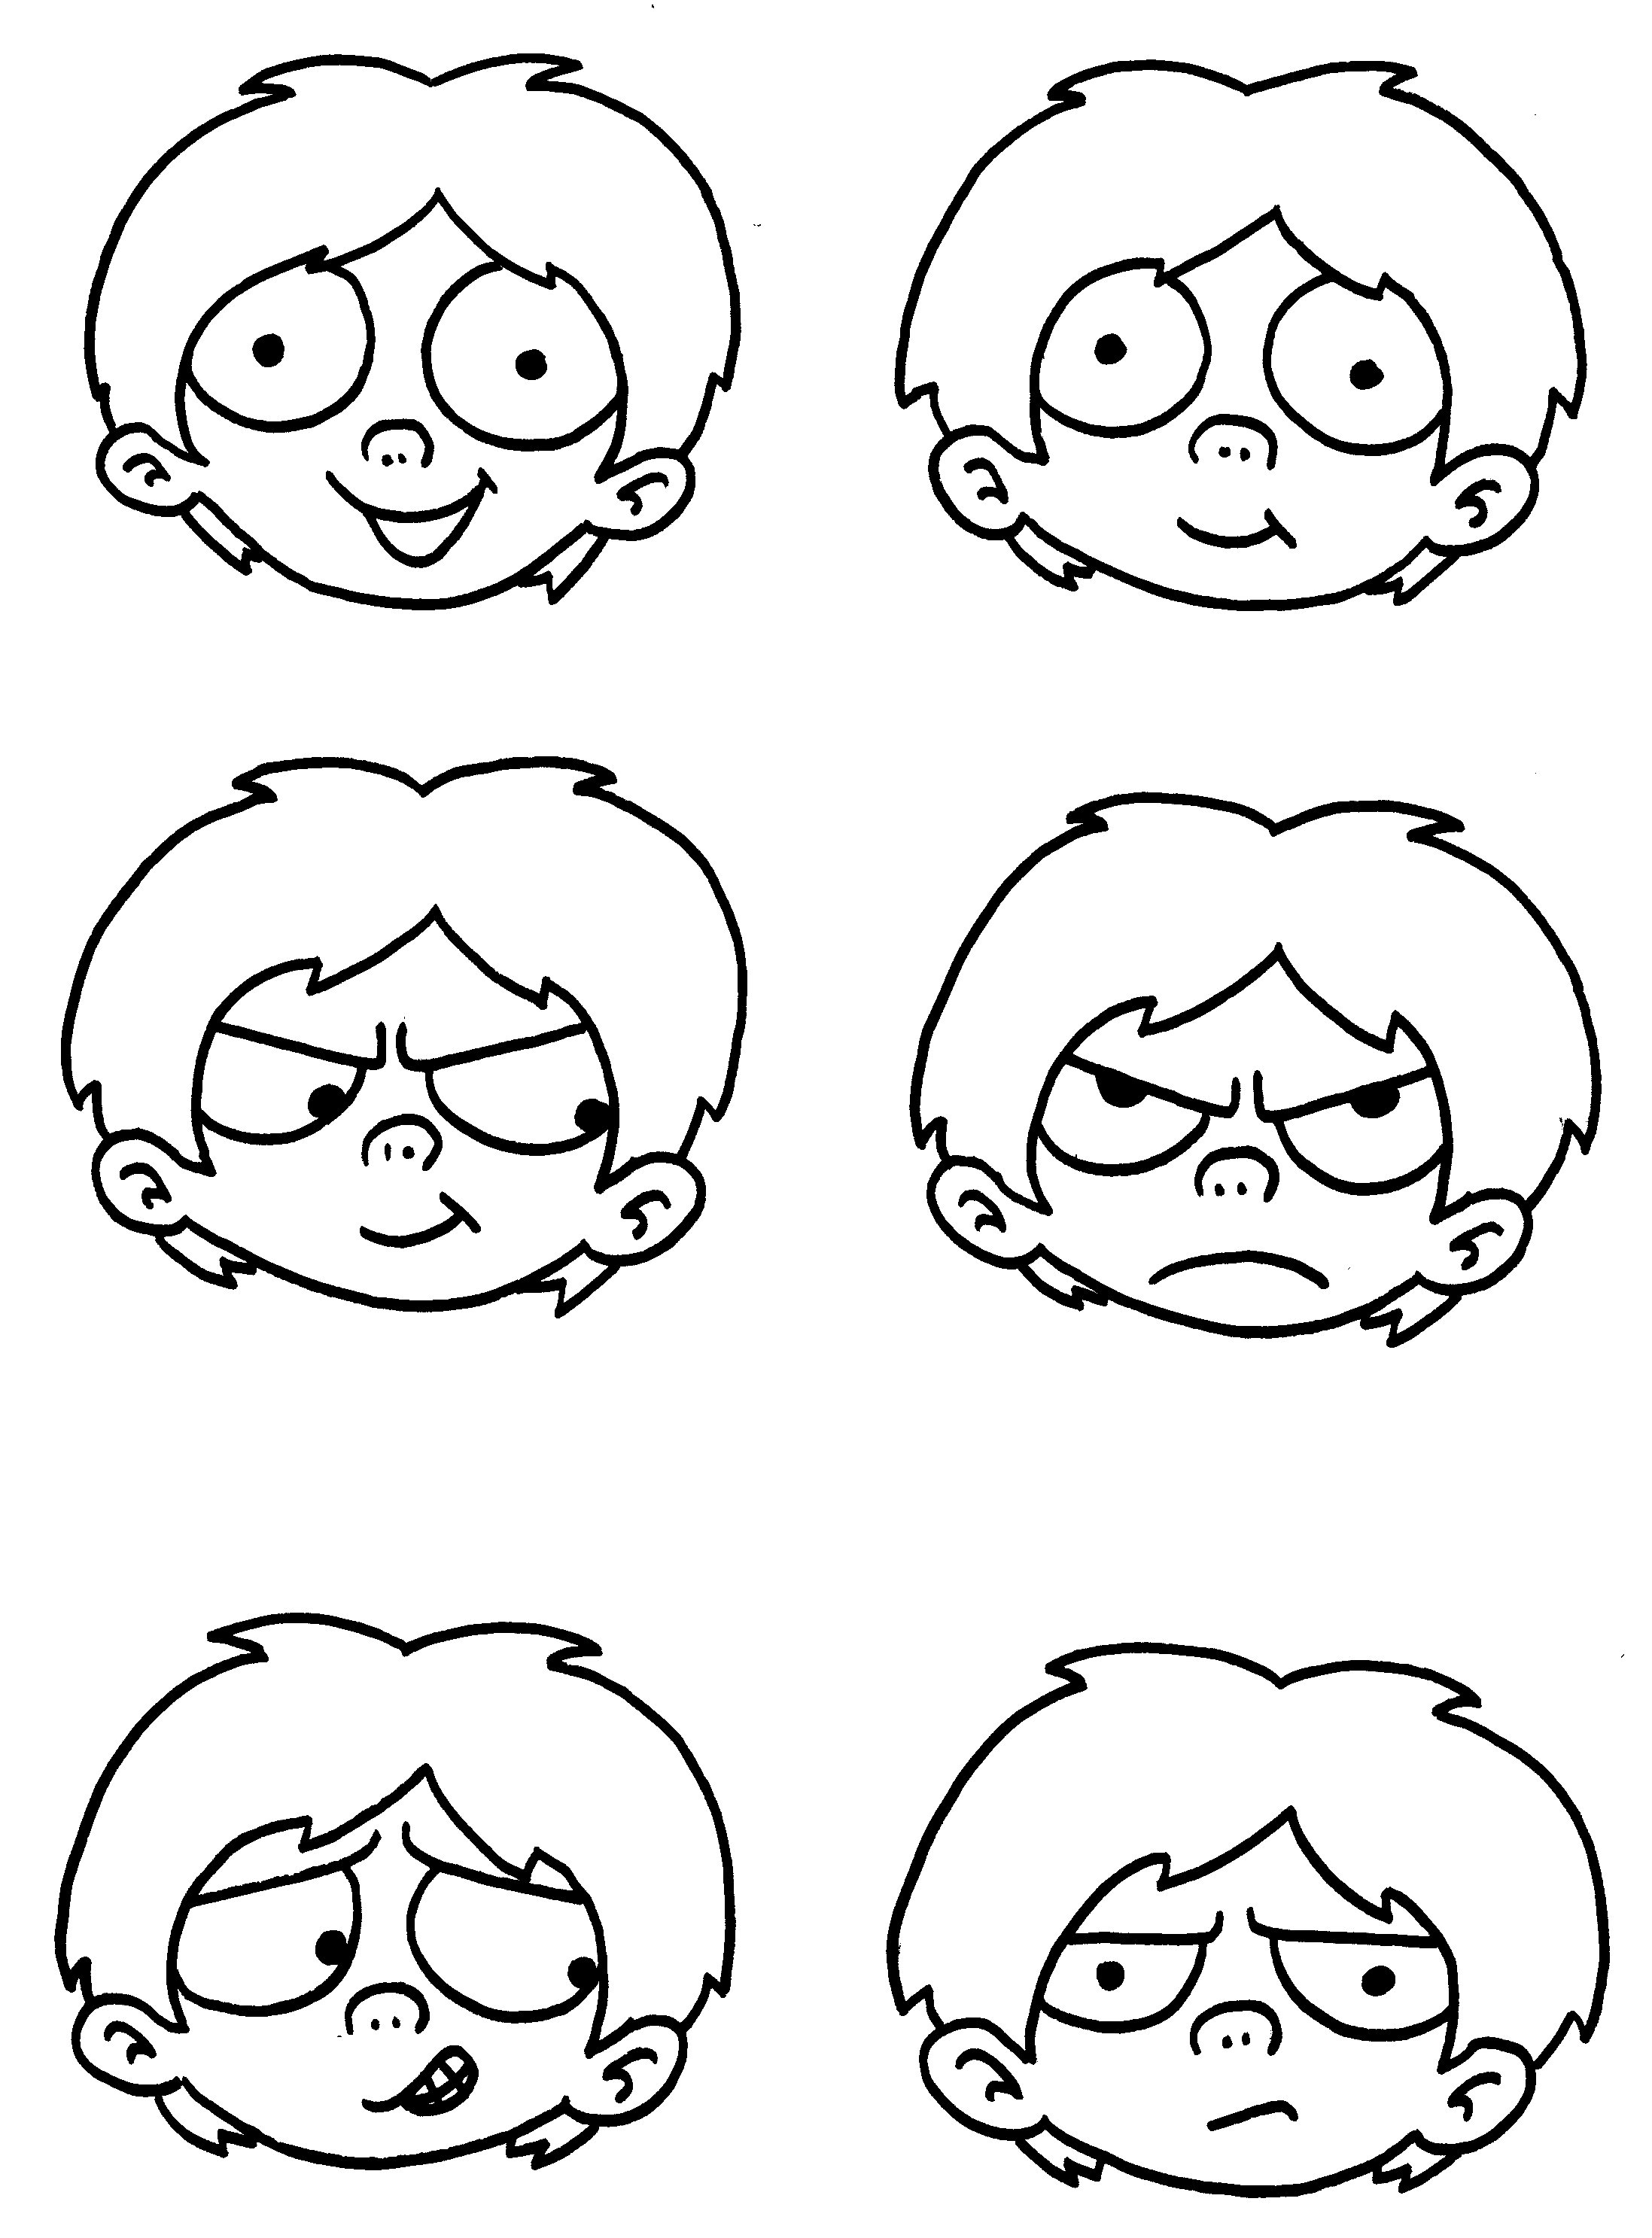 Different Facial Expressions Drawing At Getdrawings